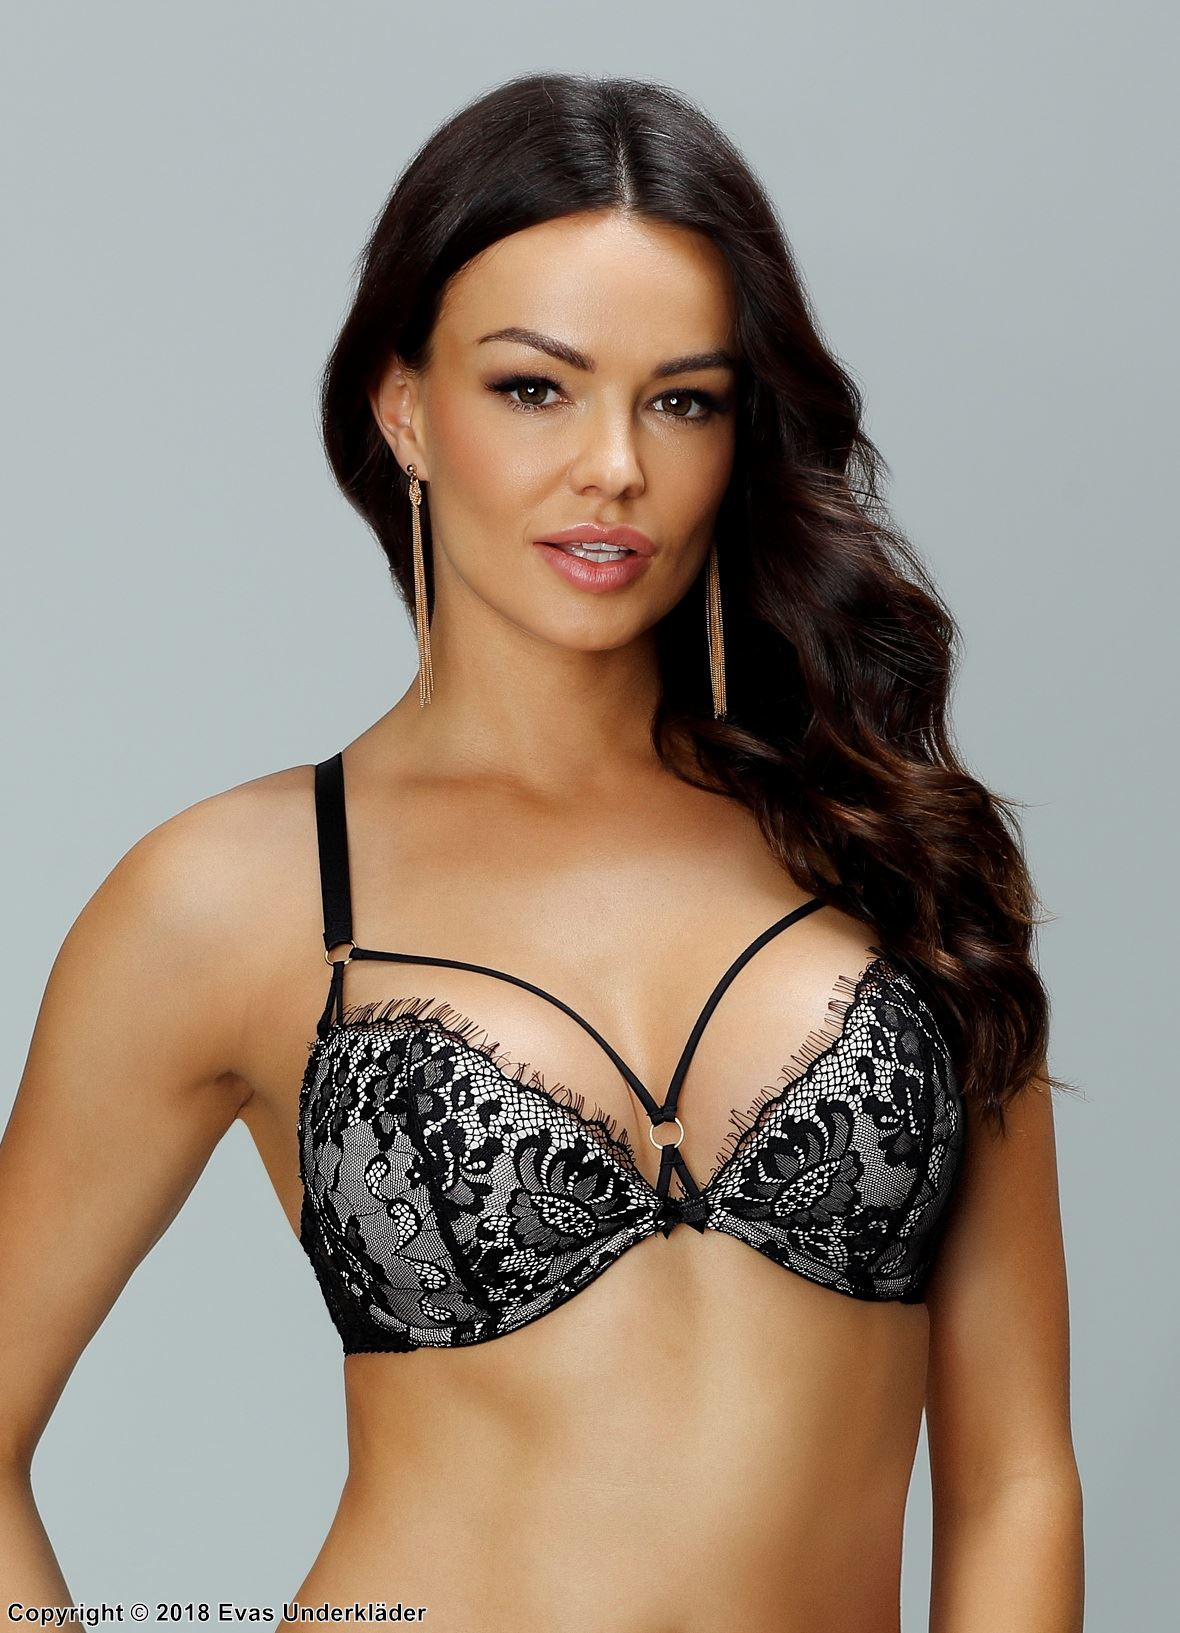 Push-up bra, straps over bust, eyelash lace, ring, A to H-cup